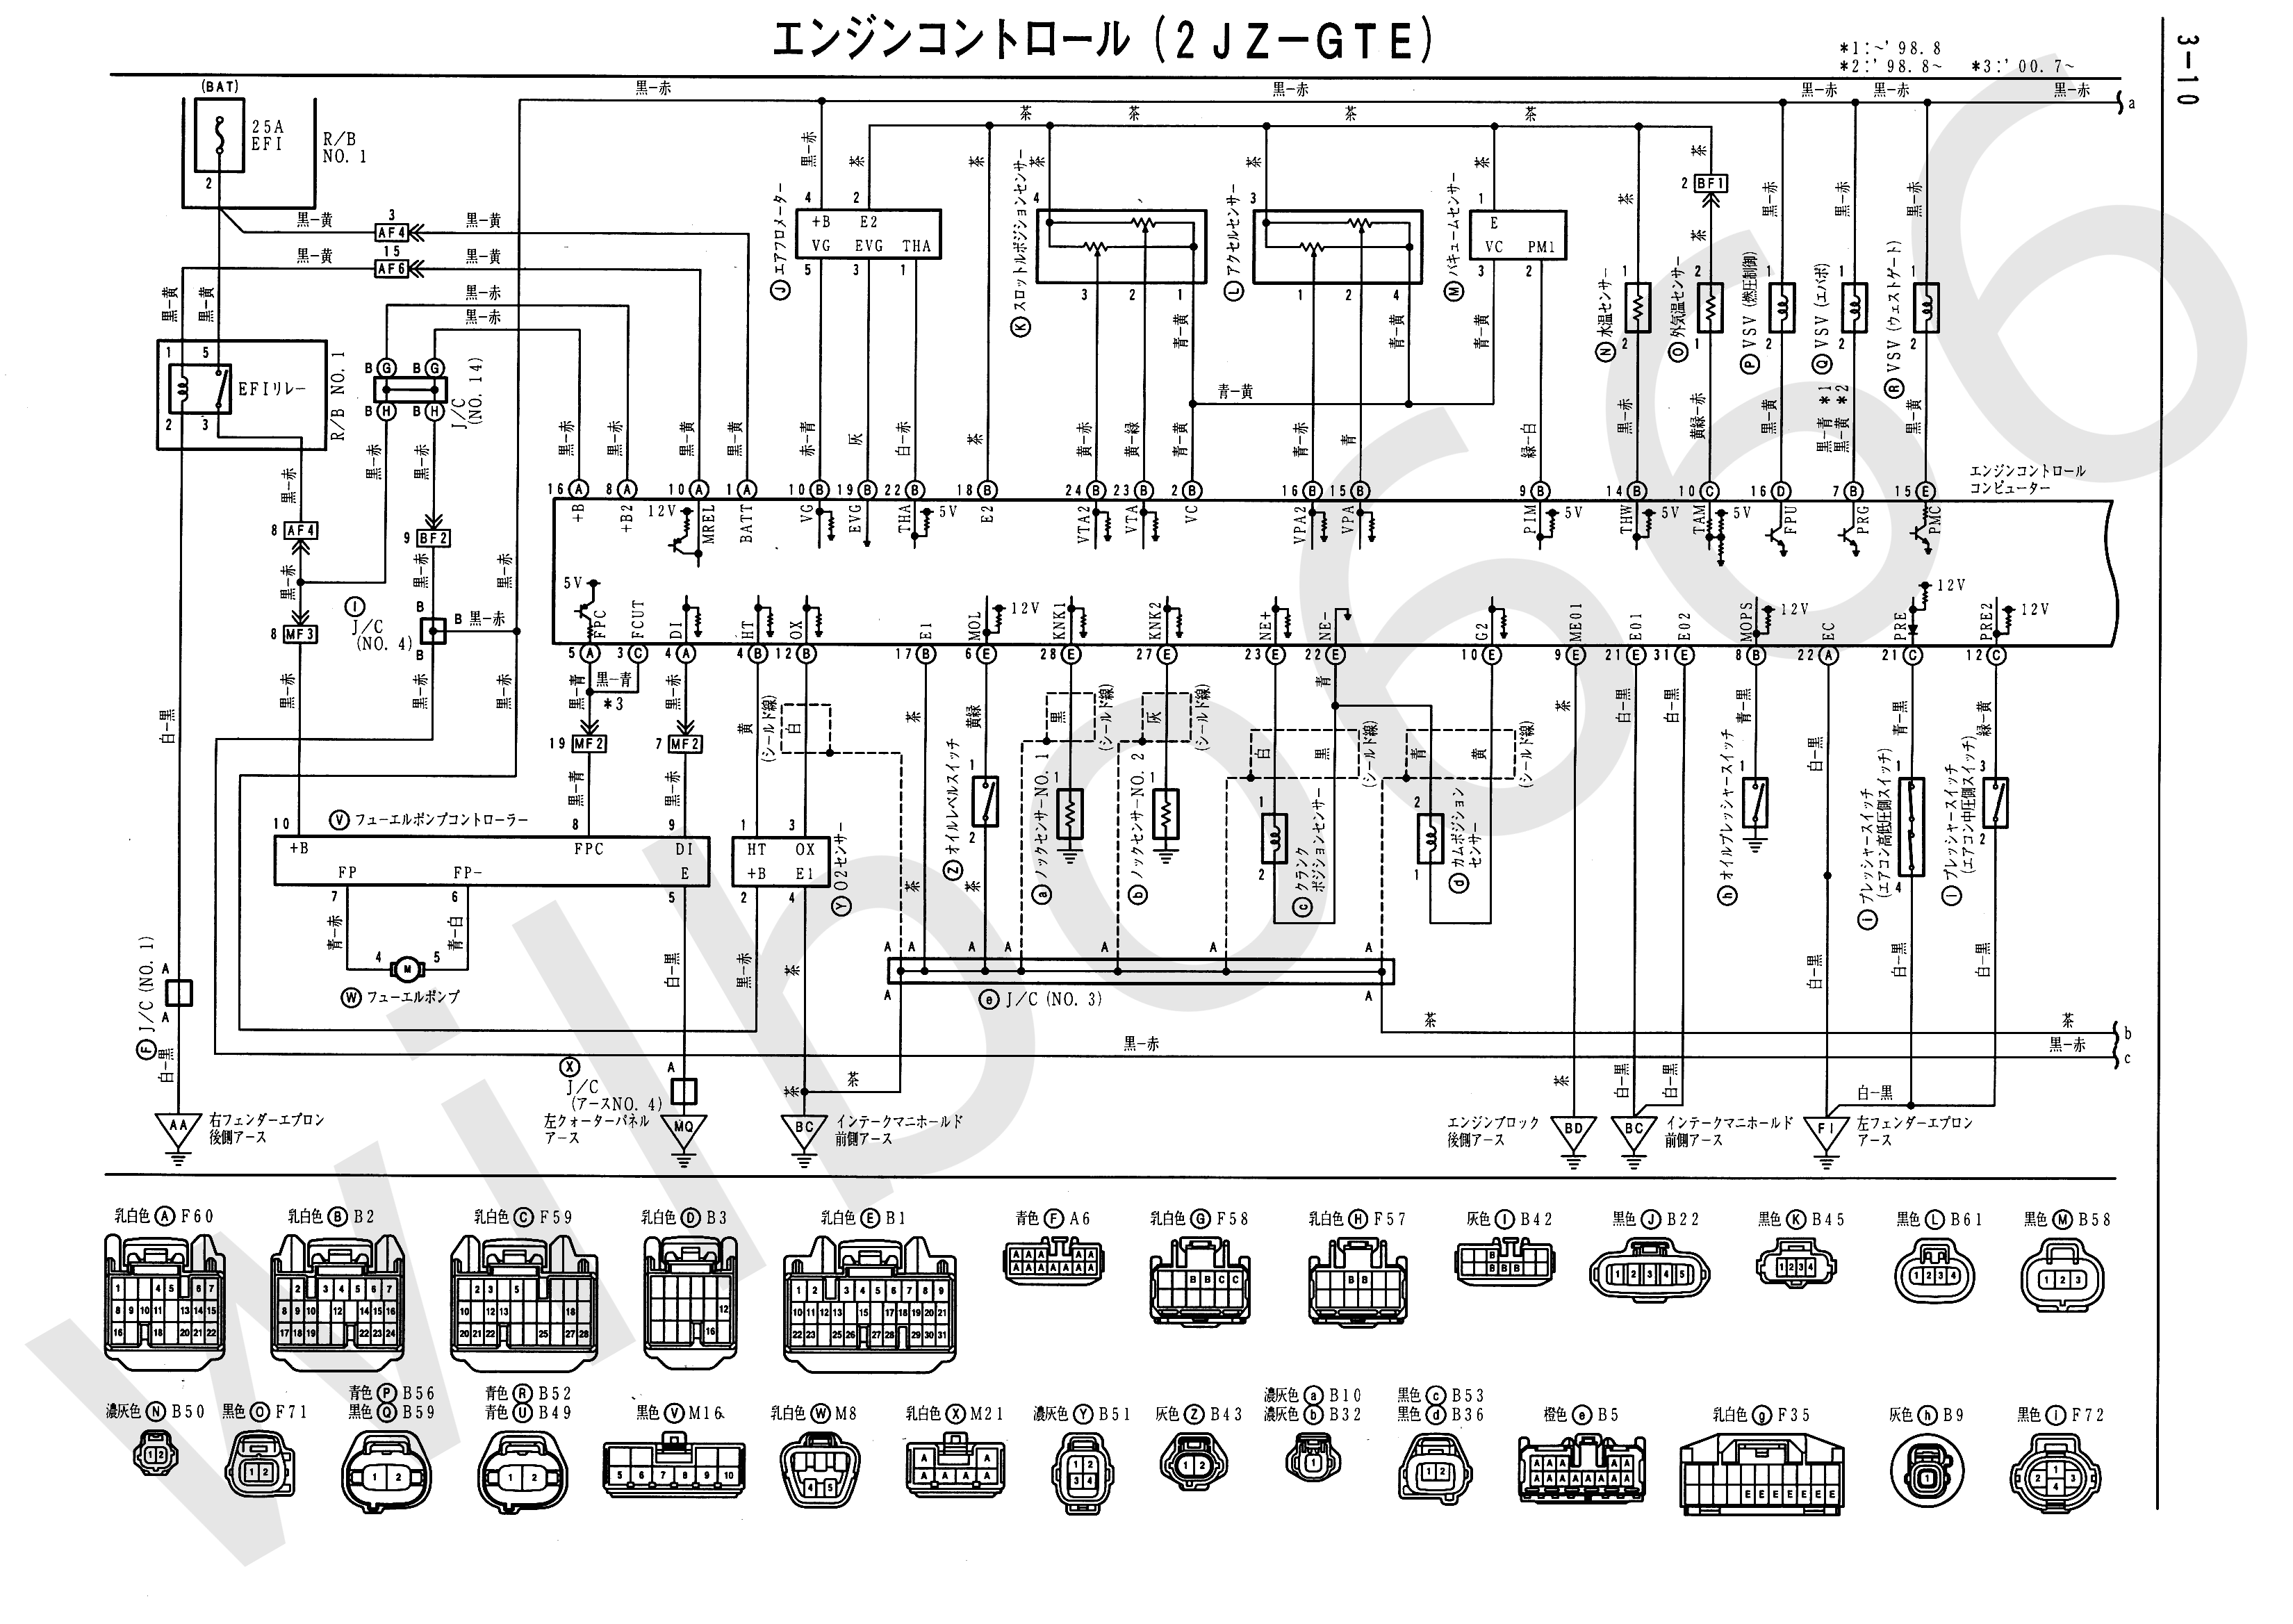 JZS161 Electrical Wiring Diagram 6748505 3 10?resize\\\\\\\=3300%2C2337 radian 1988 wiring diagram radian wiring diagrams collection Trigonometry Unit Circle Diagram Radians at reclaimingppi.co